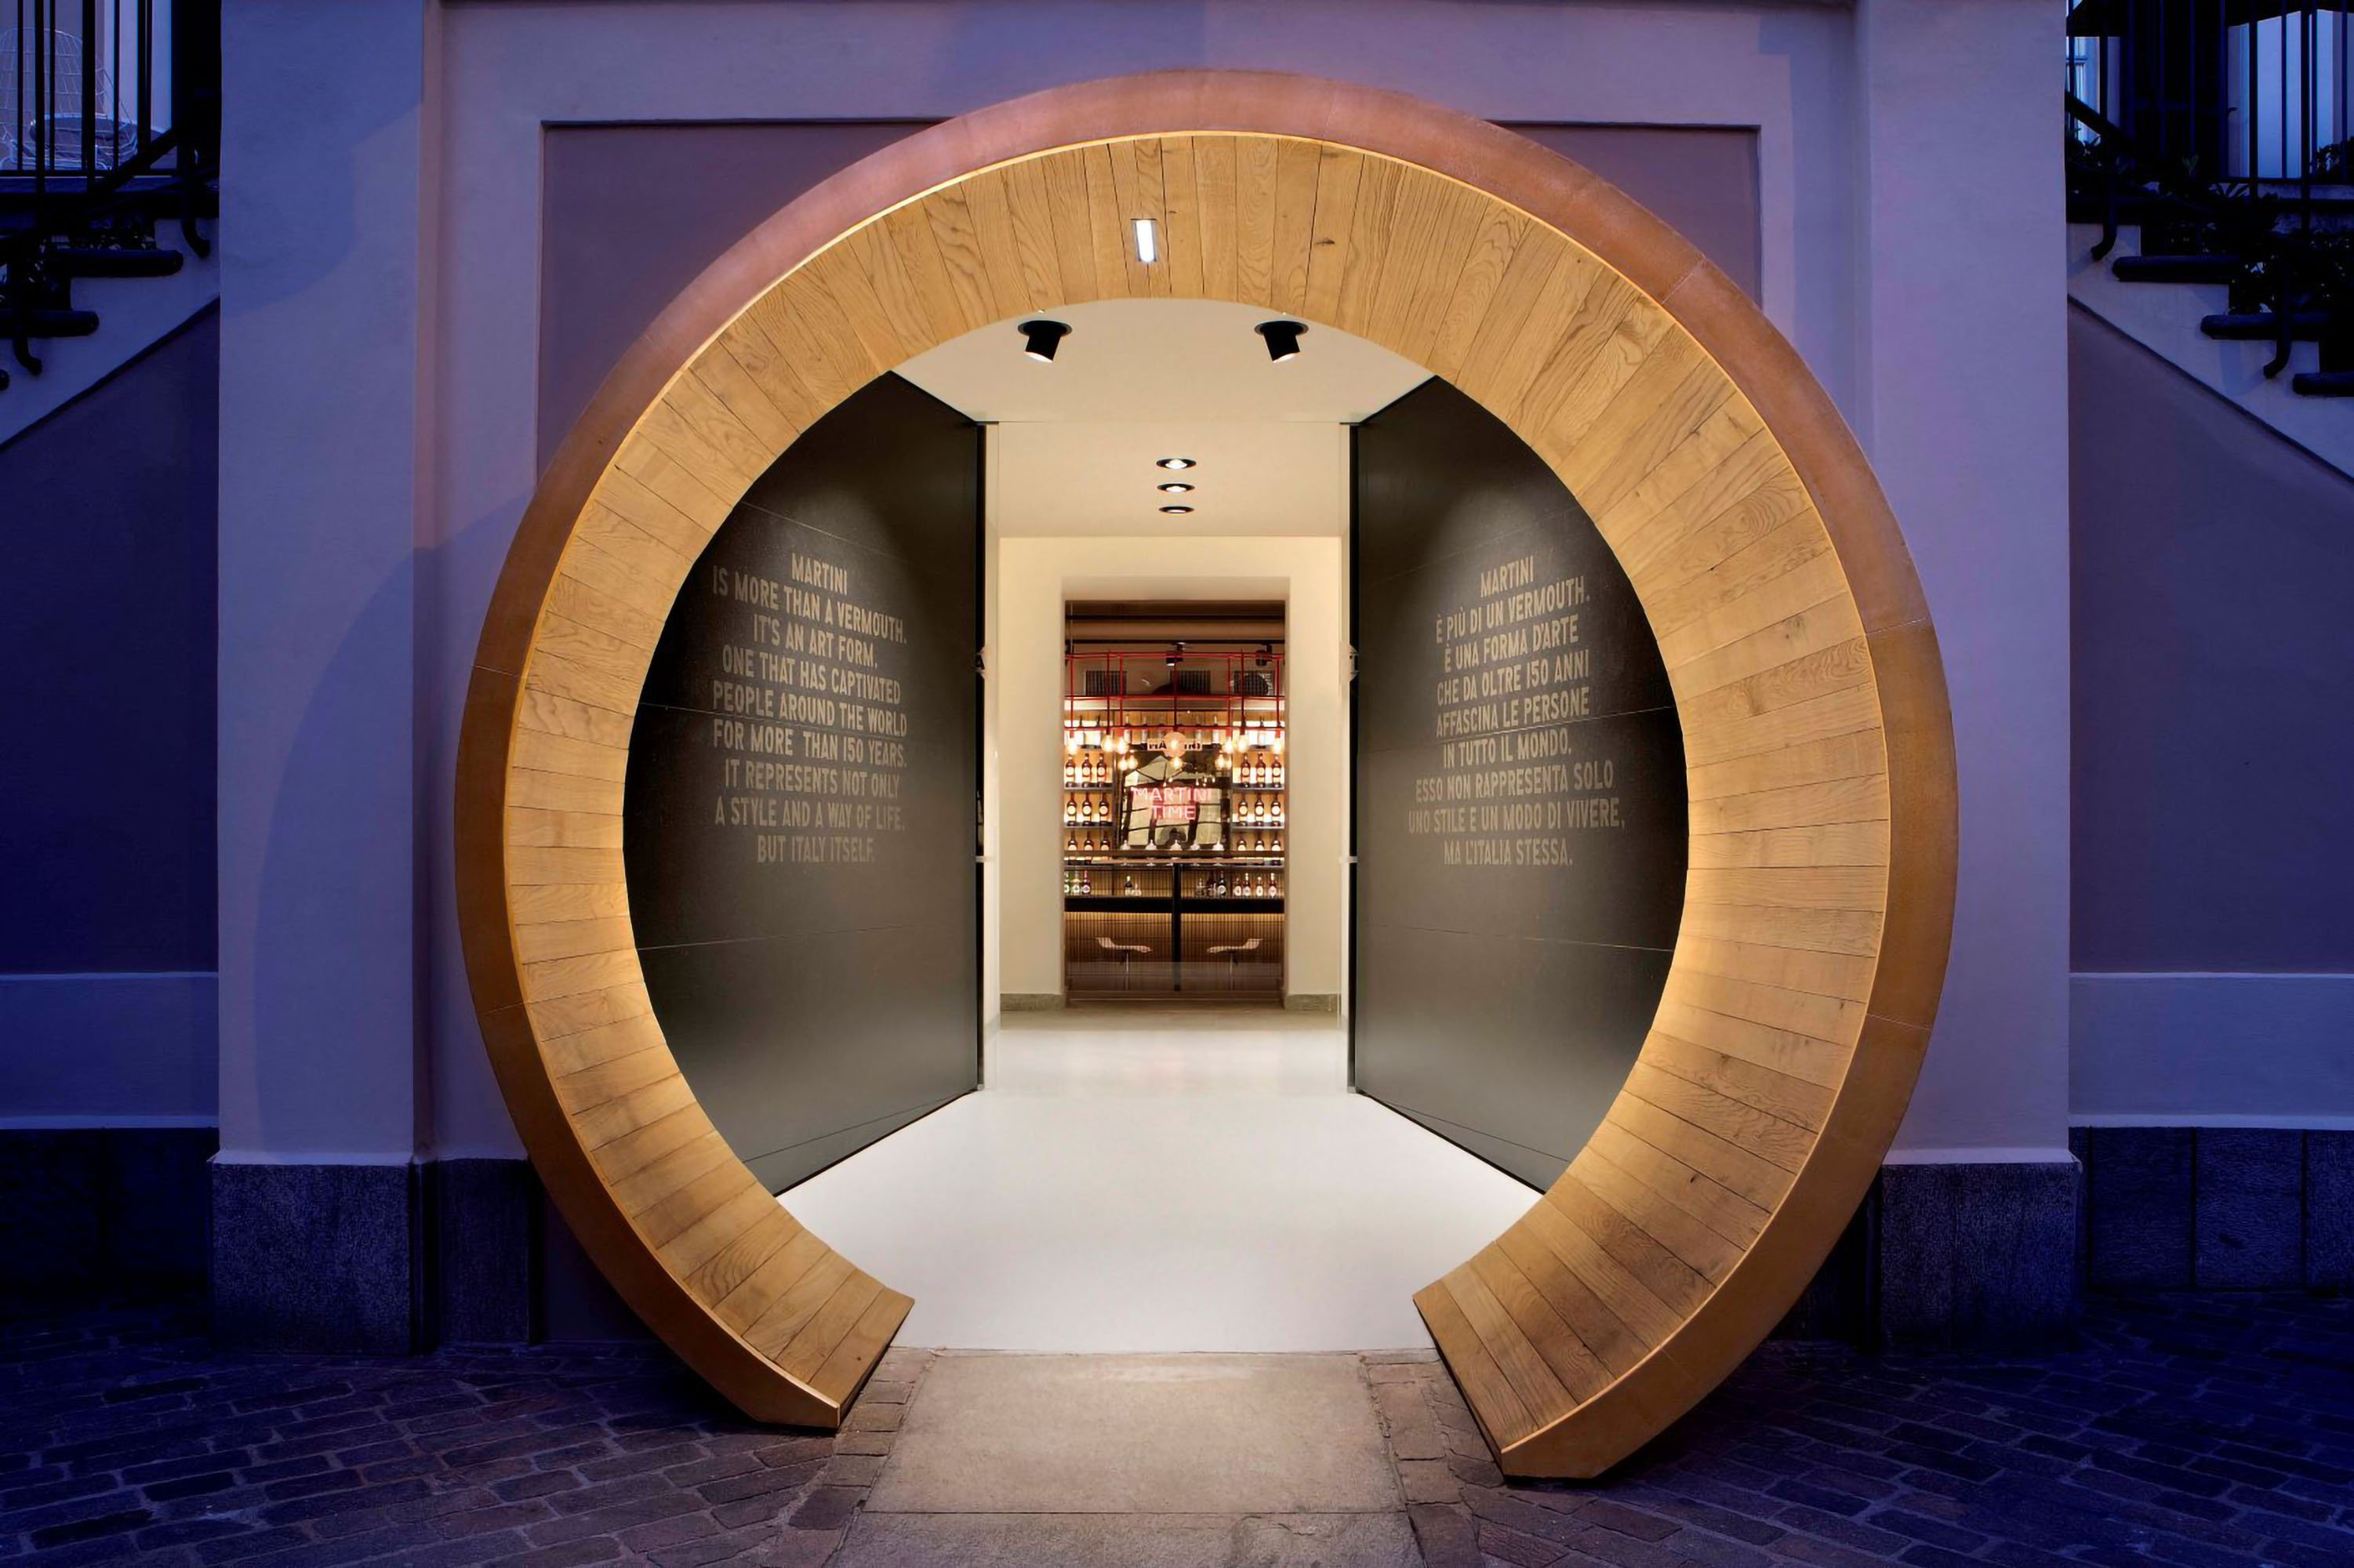 The restyling of Casa MARTINI: a modern, interactive museum